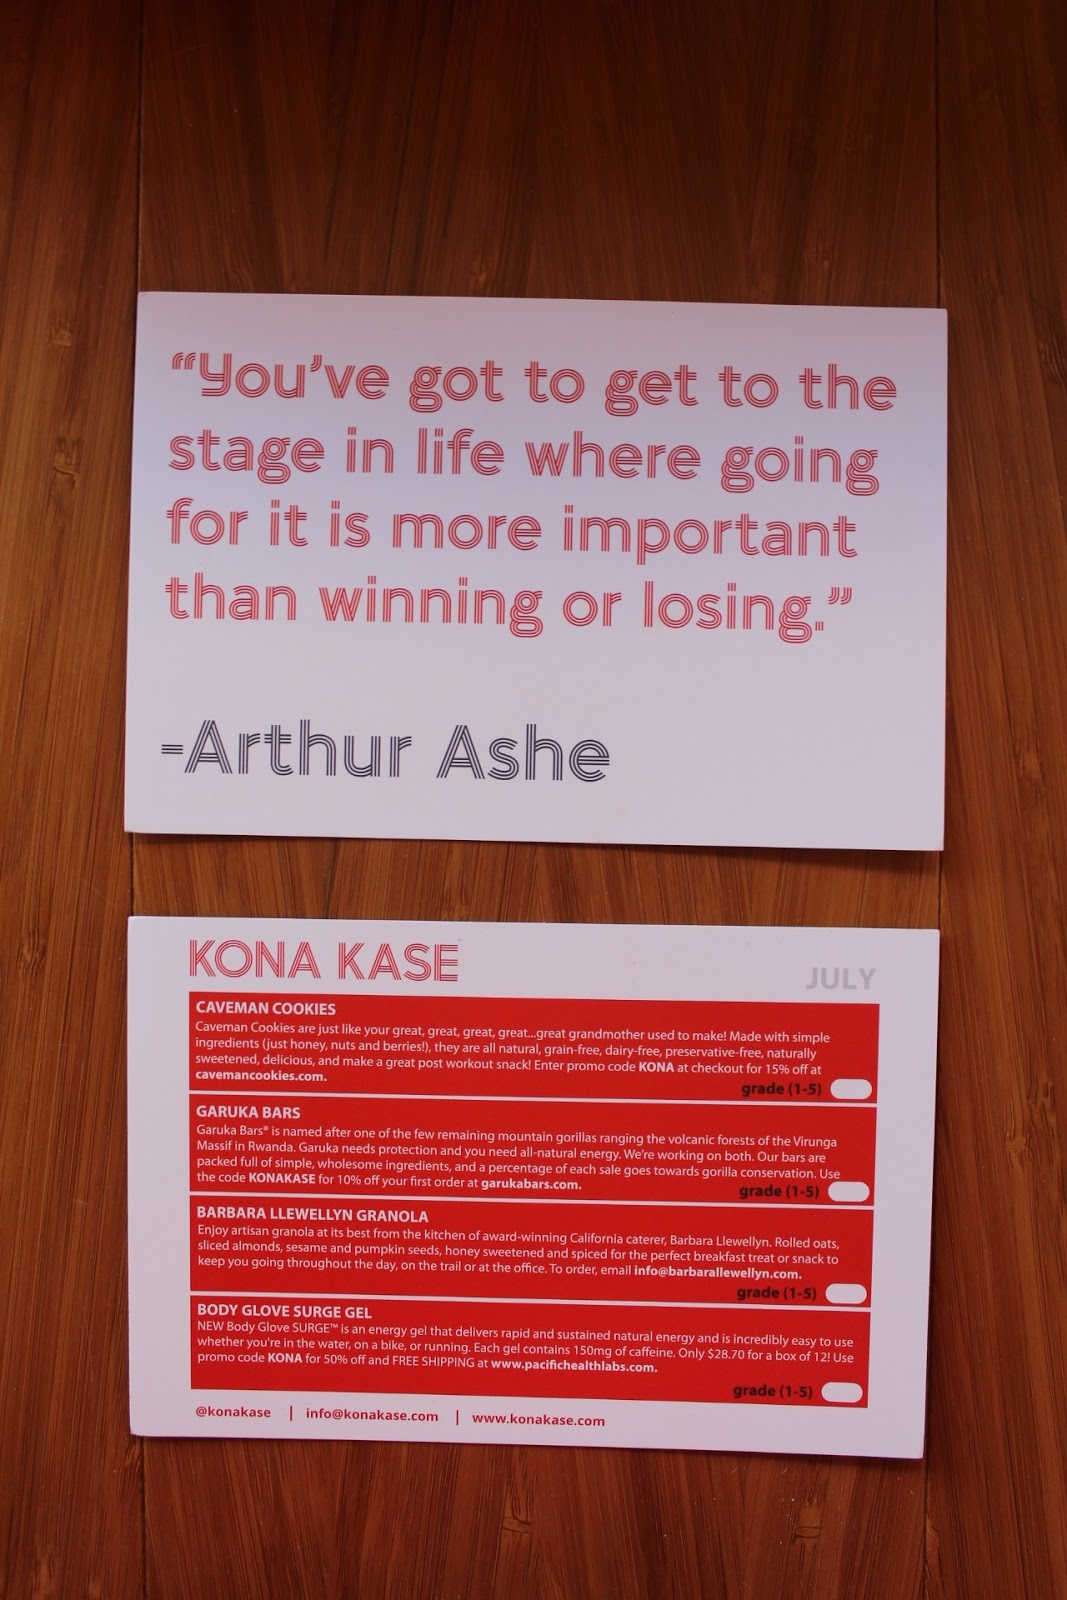 kona kase review july 2013 50 off coupon code subscription love